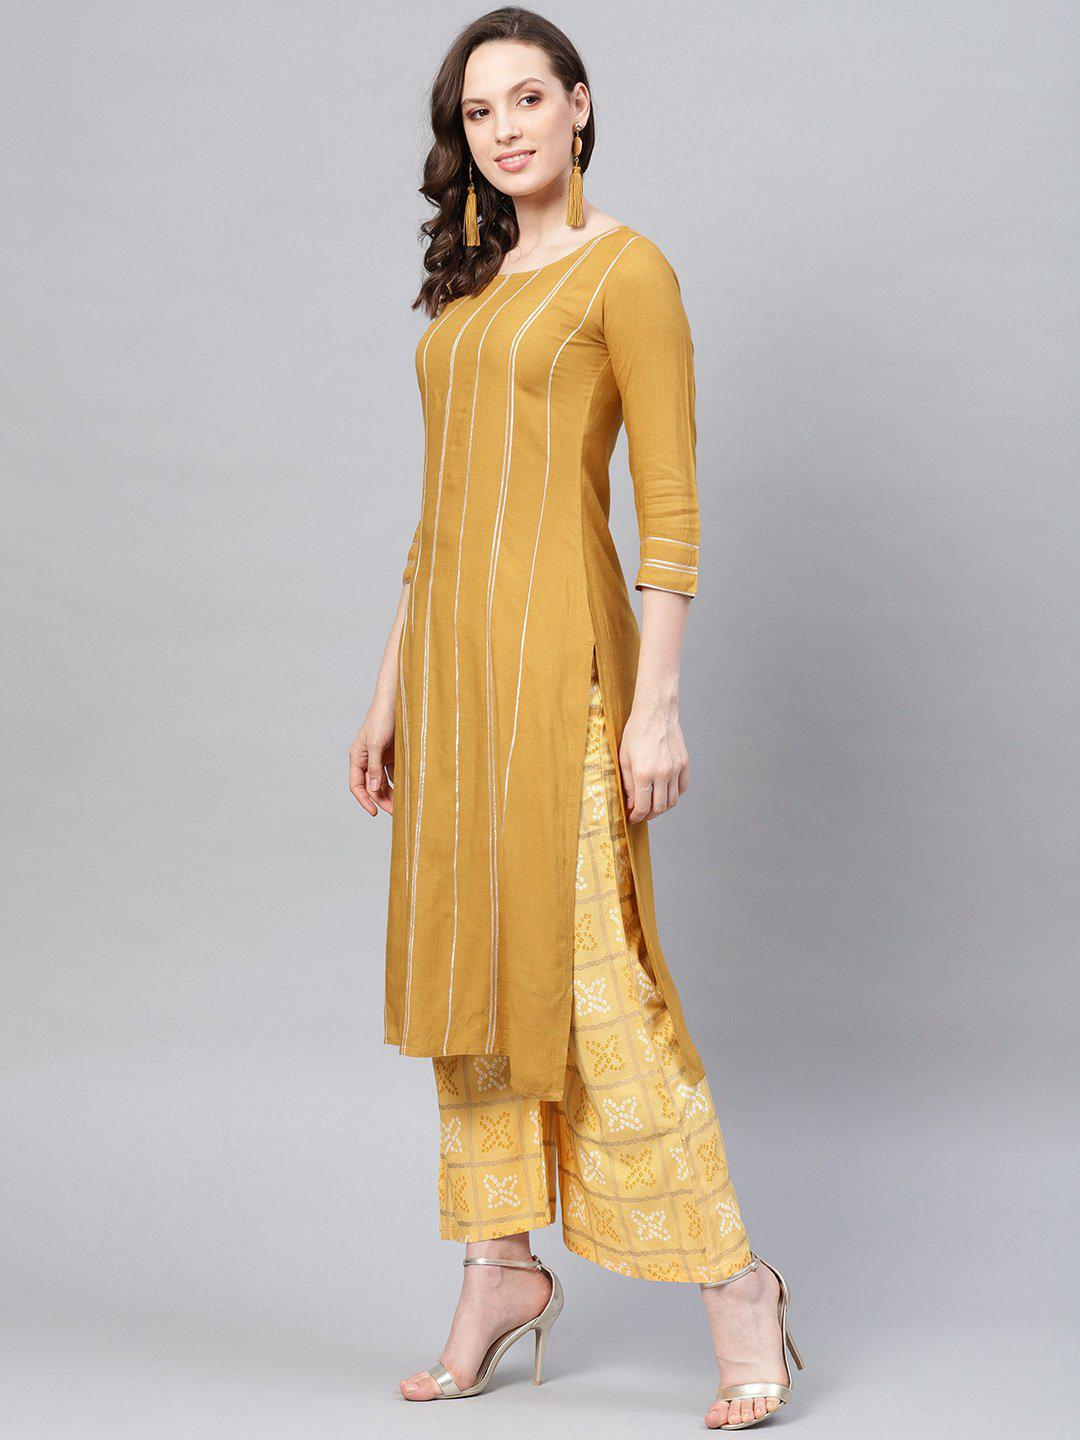 Women Yellow Striped Kurta with Palazzos & Dupatta - Kurta Set - Zooomberg - Zoomberg